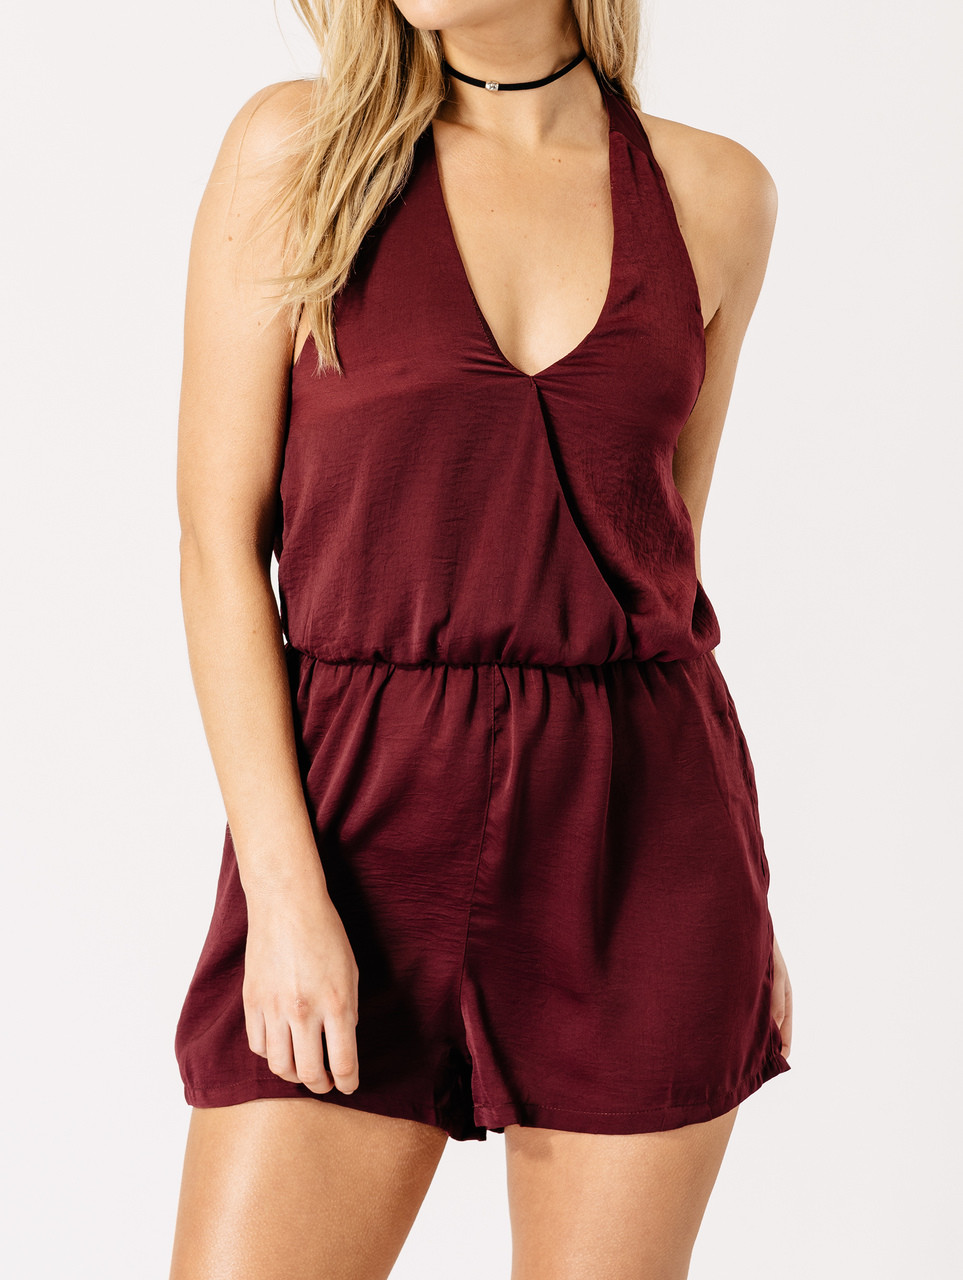 Burgundy Satin Halter Neck Playsuit